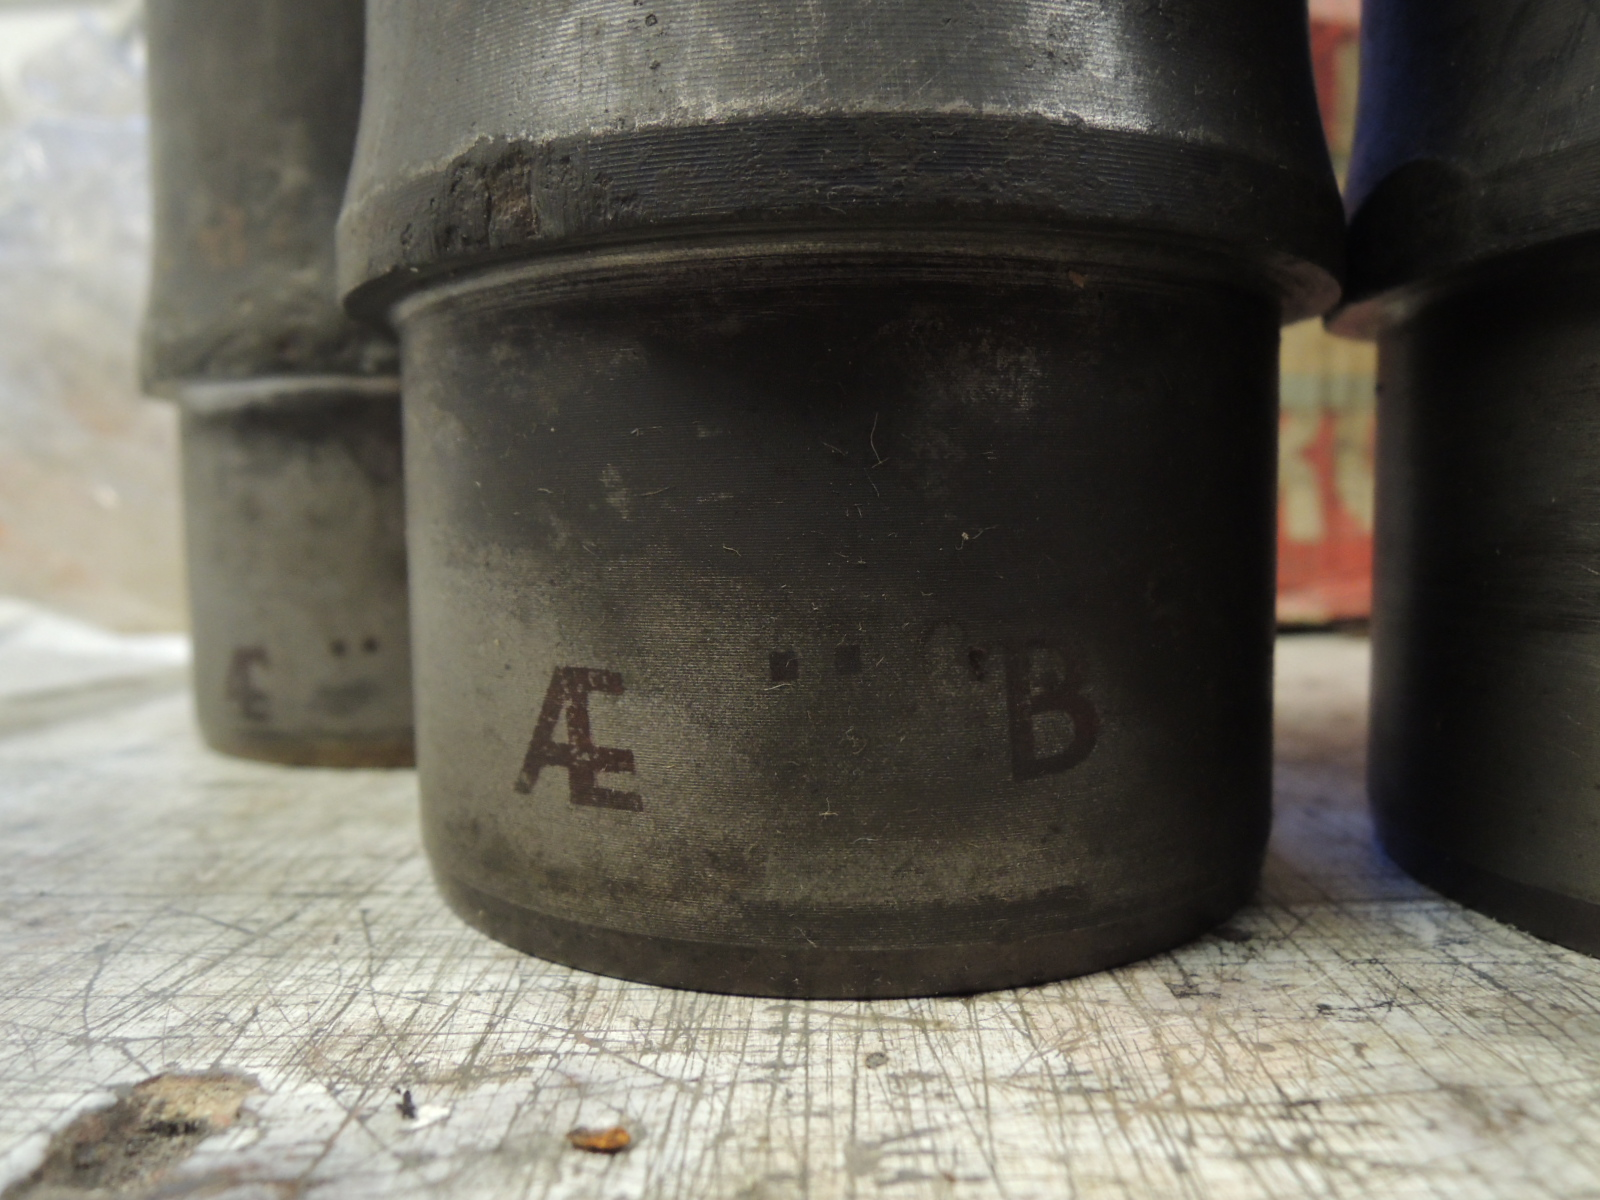 105 Giulia 1300 engine cylinder liners-used